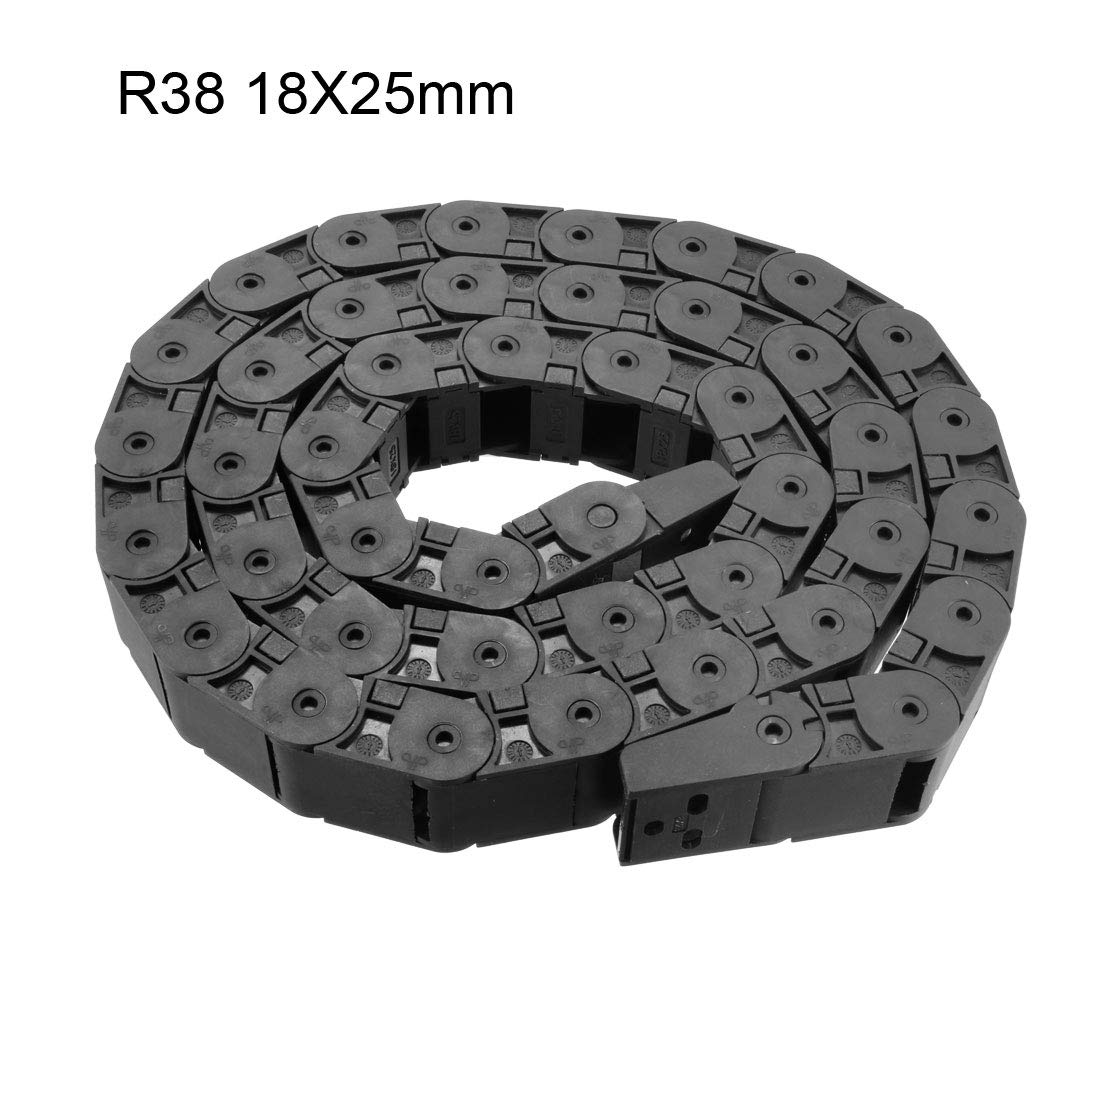 uxcell Drag Chain Cable Carrier Open Type with End Connectors R55 25X38mm 1 Meter Plastic for Electrical CNC Router Machines Black